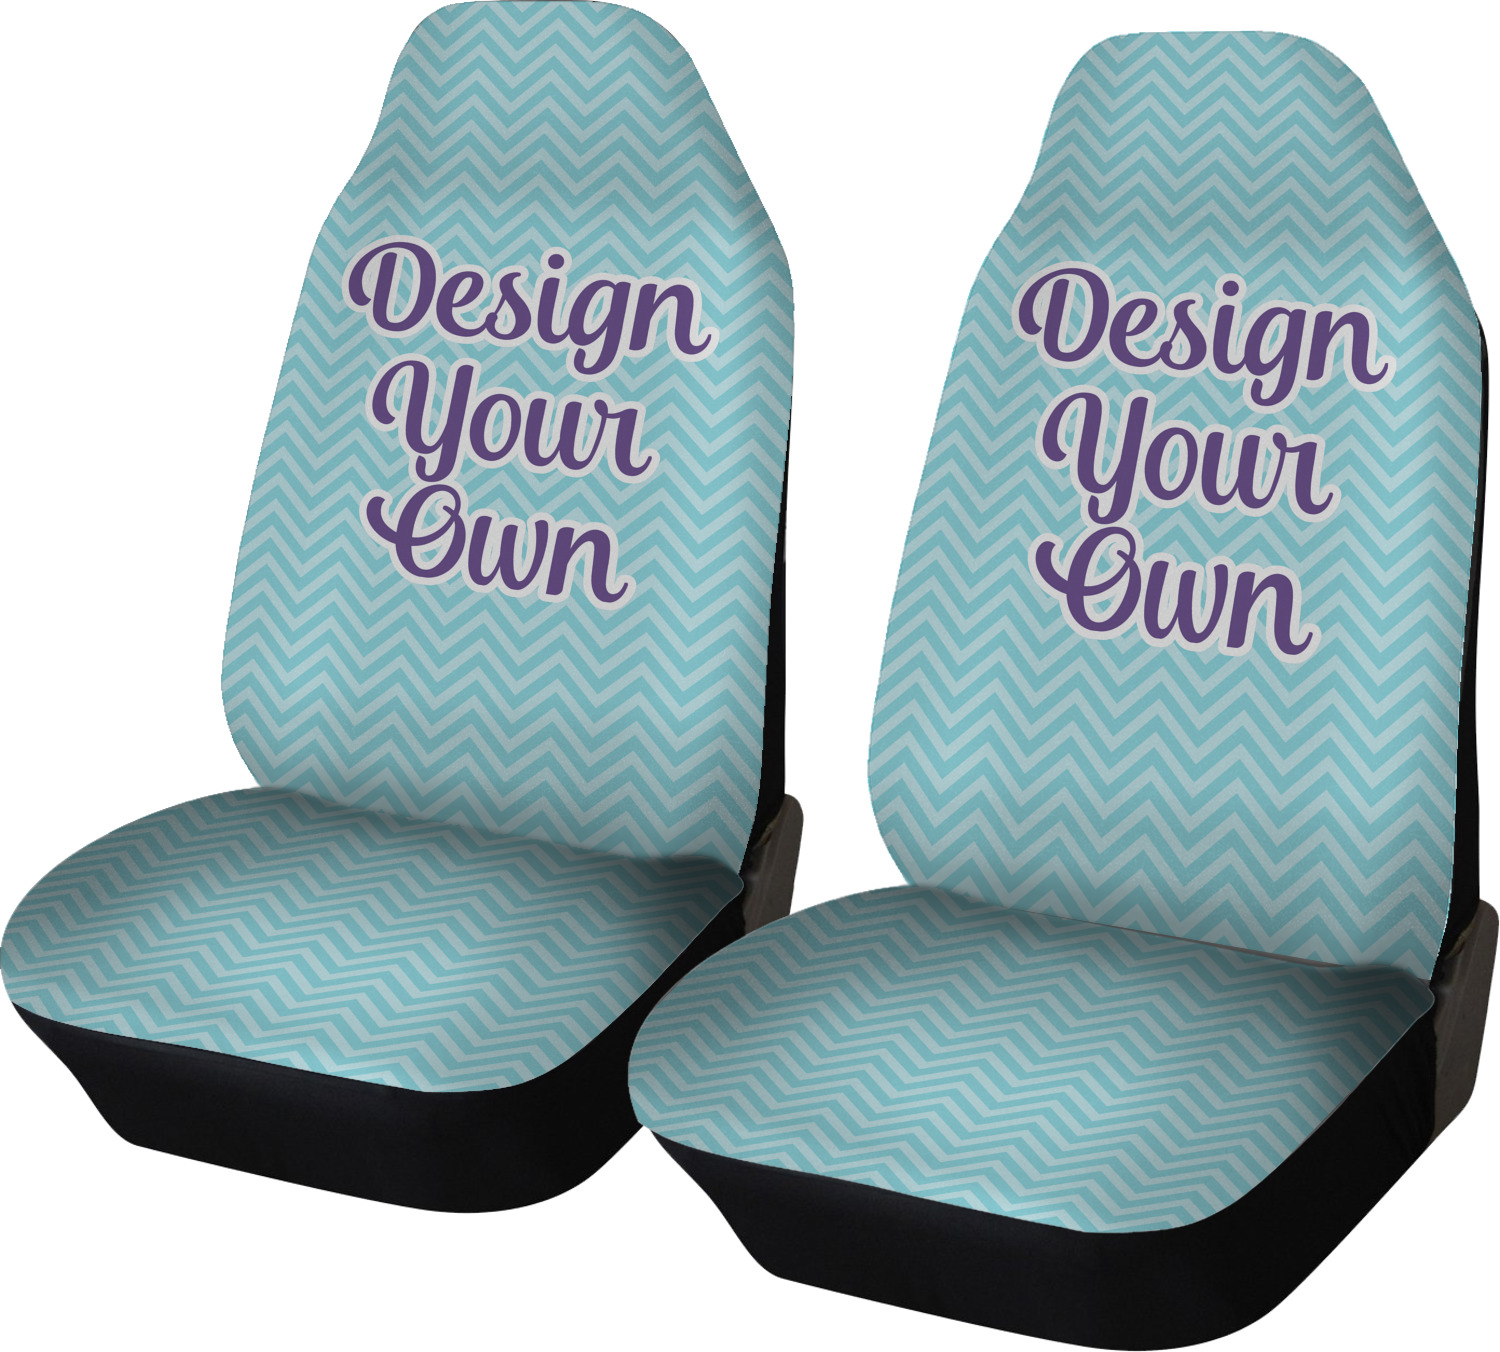 Outstanding Design Your Own Personalized Car Seat Covers Set Of Two Theyellowbook Wood Chair Design Ideas Theyellowbookinfo